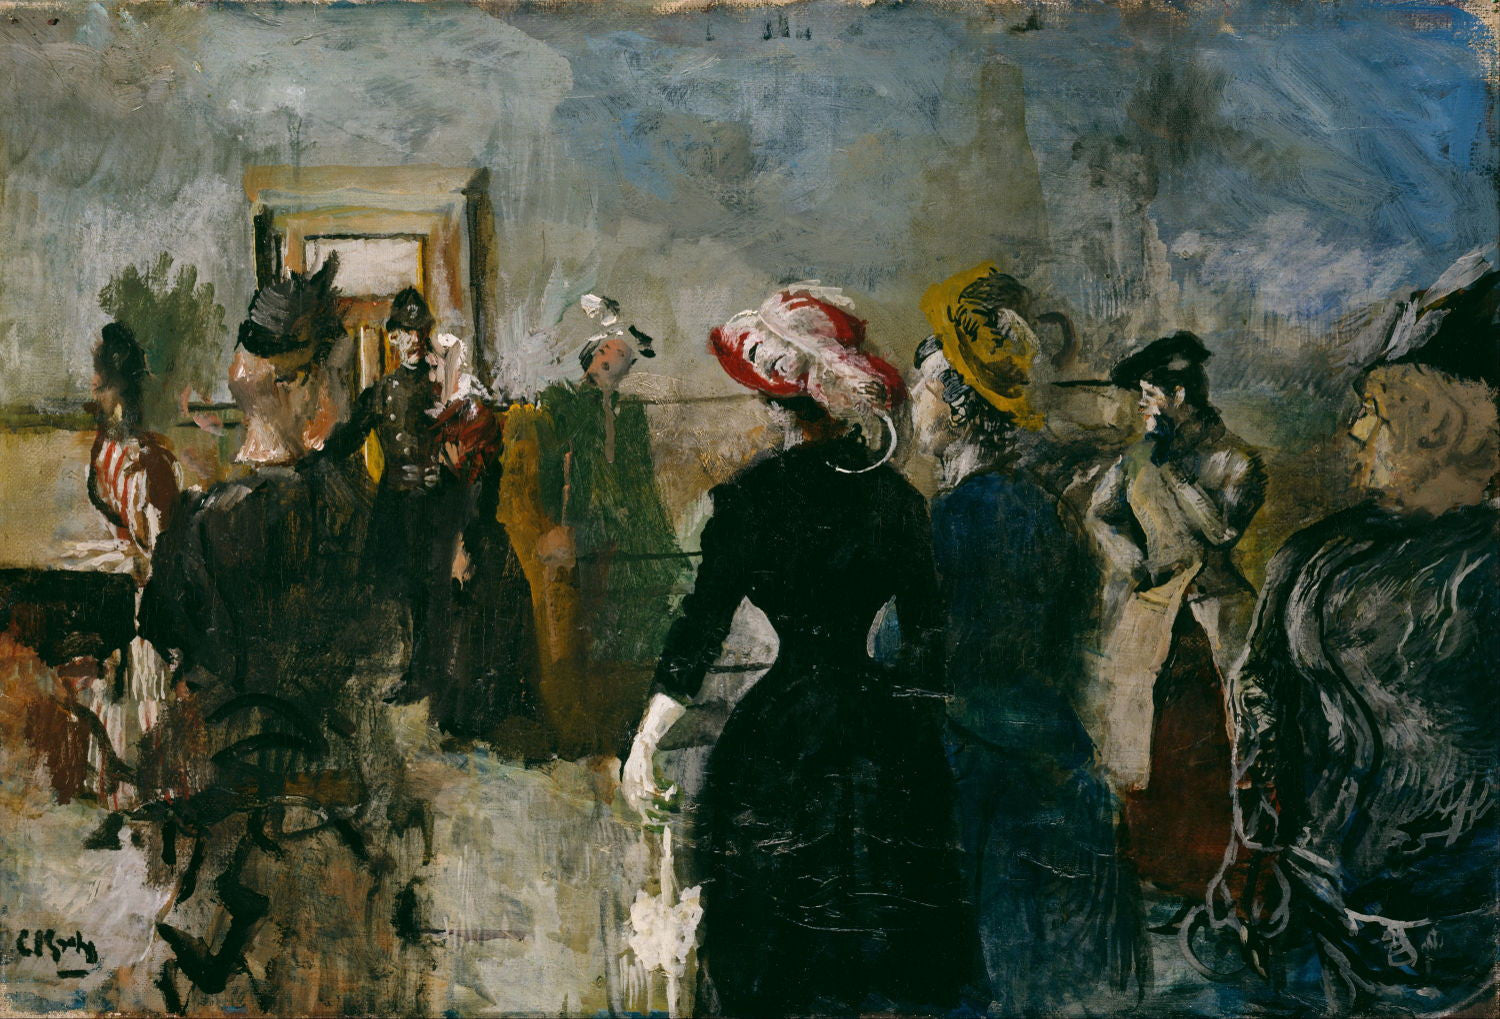 Christian Krohg | Buy Posters, Frames, Canvas, Digital Art & Large Size Prints Of The Famous Modern Master's Artworks